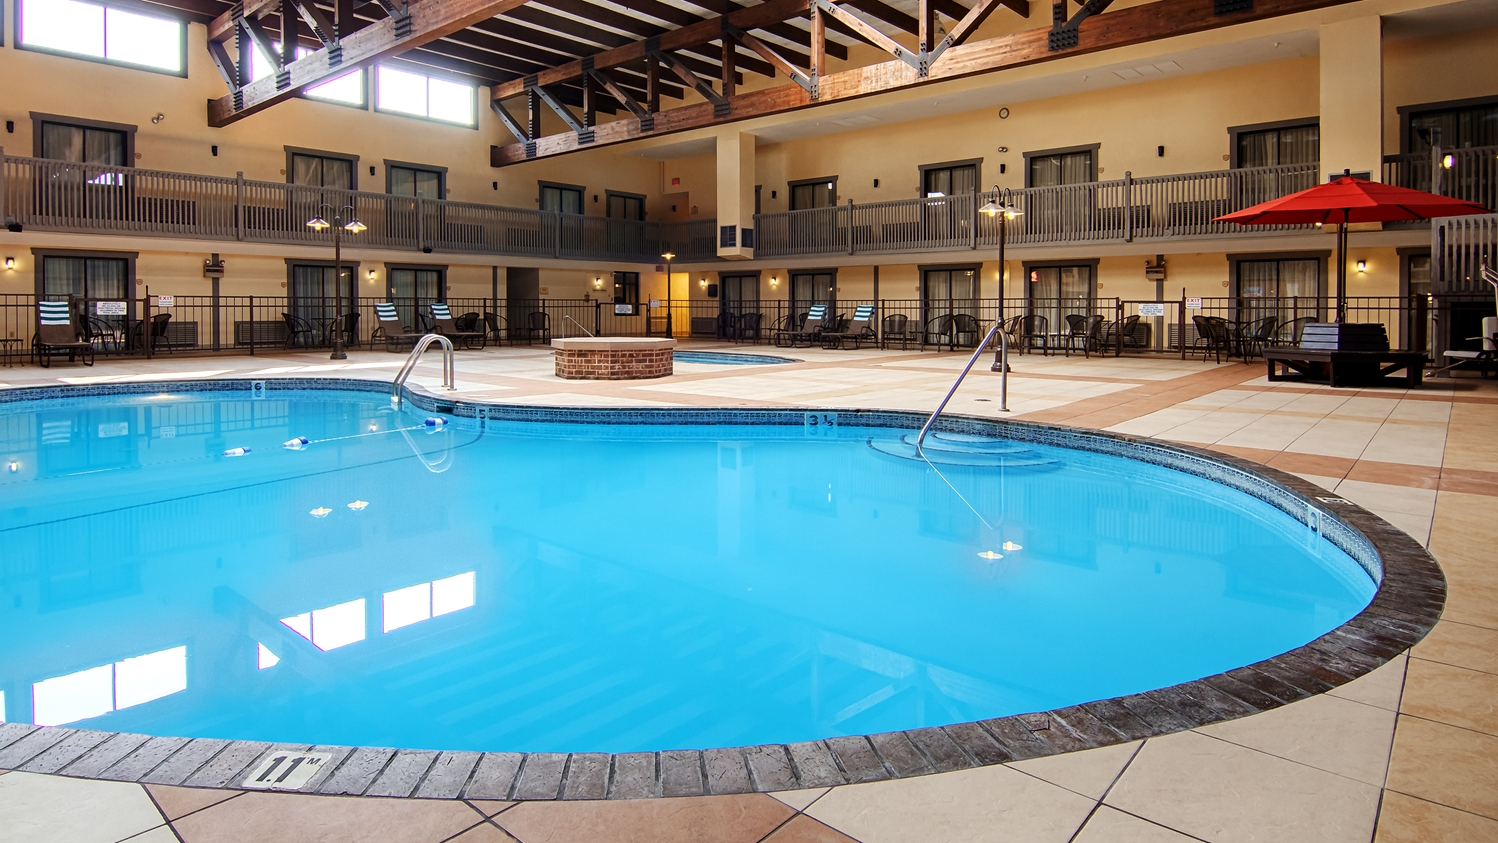 Fairfield Ohio Accommodations. Find hotels & motels in Fairfield using the list mpupload.ga for the cheapest discounted hotel and motel rates in or near Fairfield, OH for your personal leisure or .